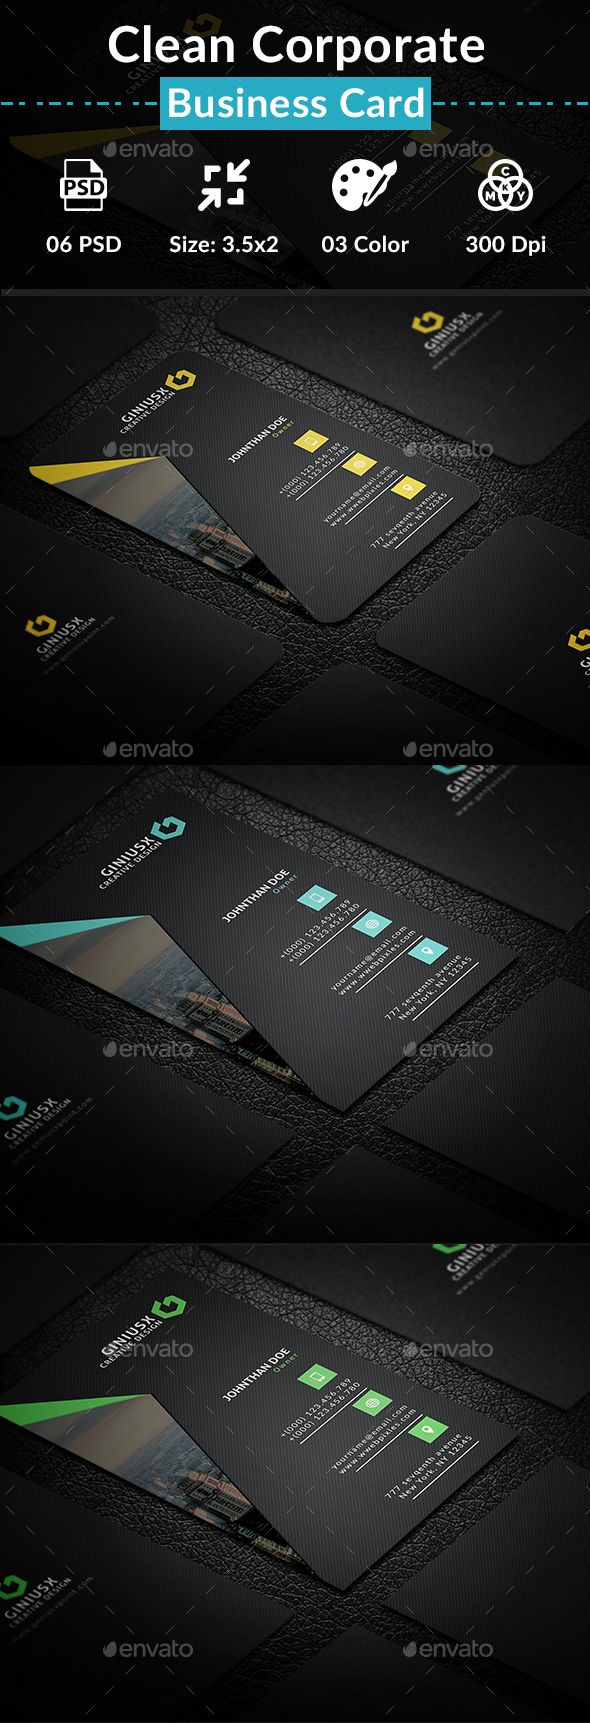 Clean Corporate Business Card - Creative Business Cards Download here : graphicr...